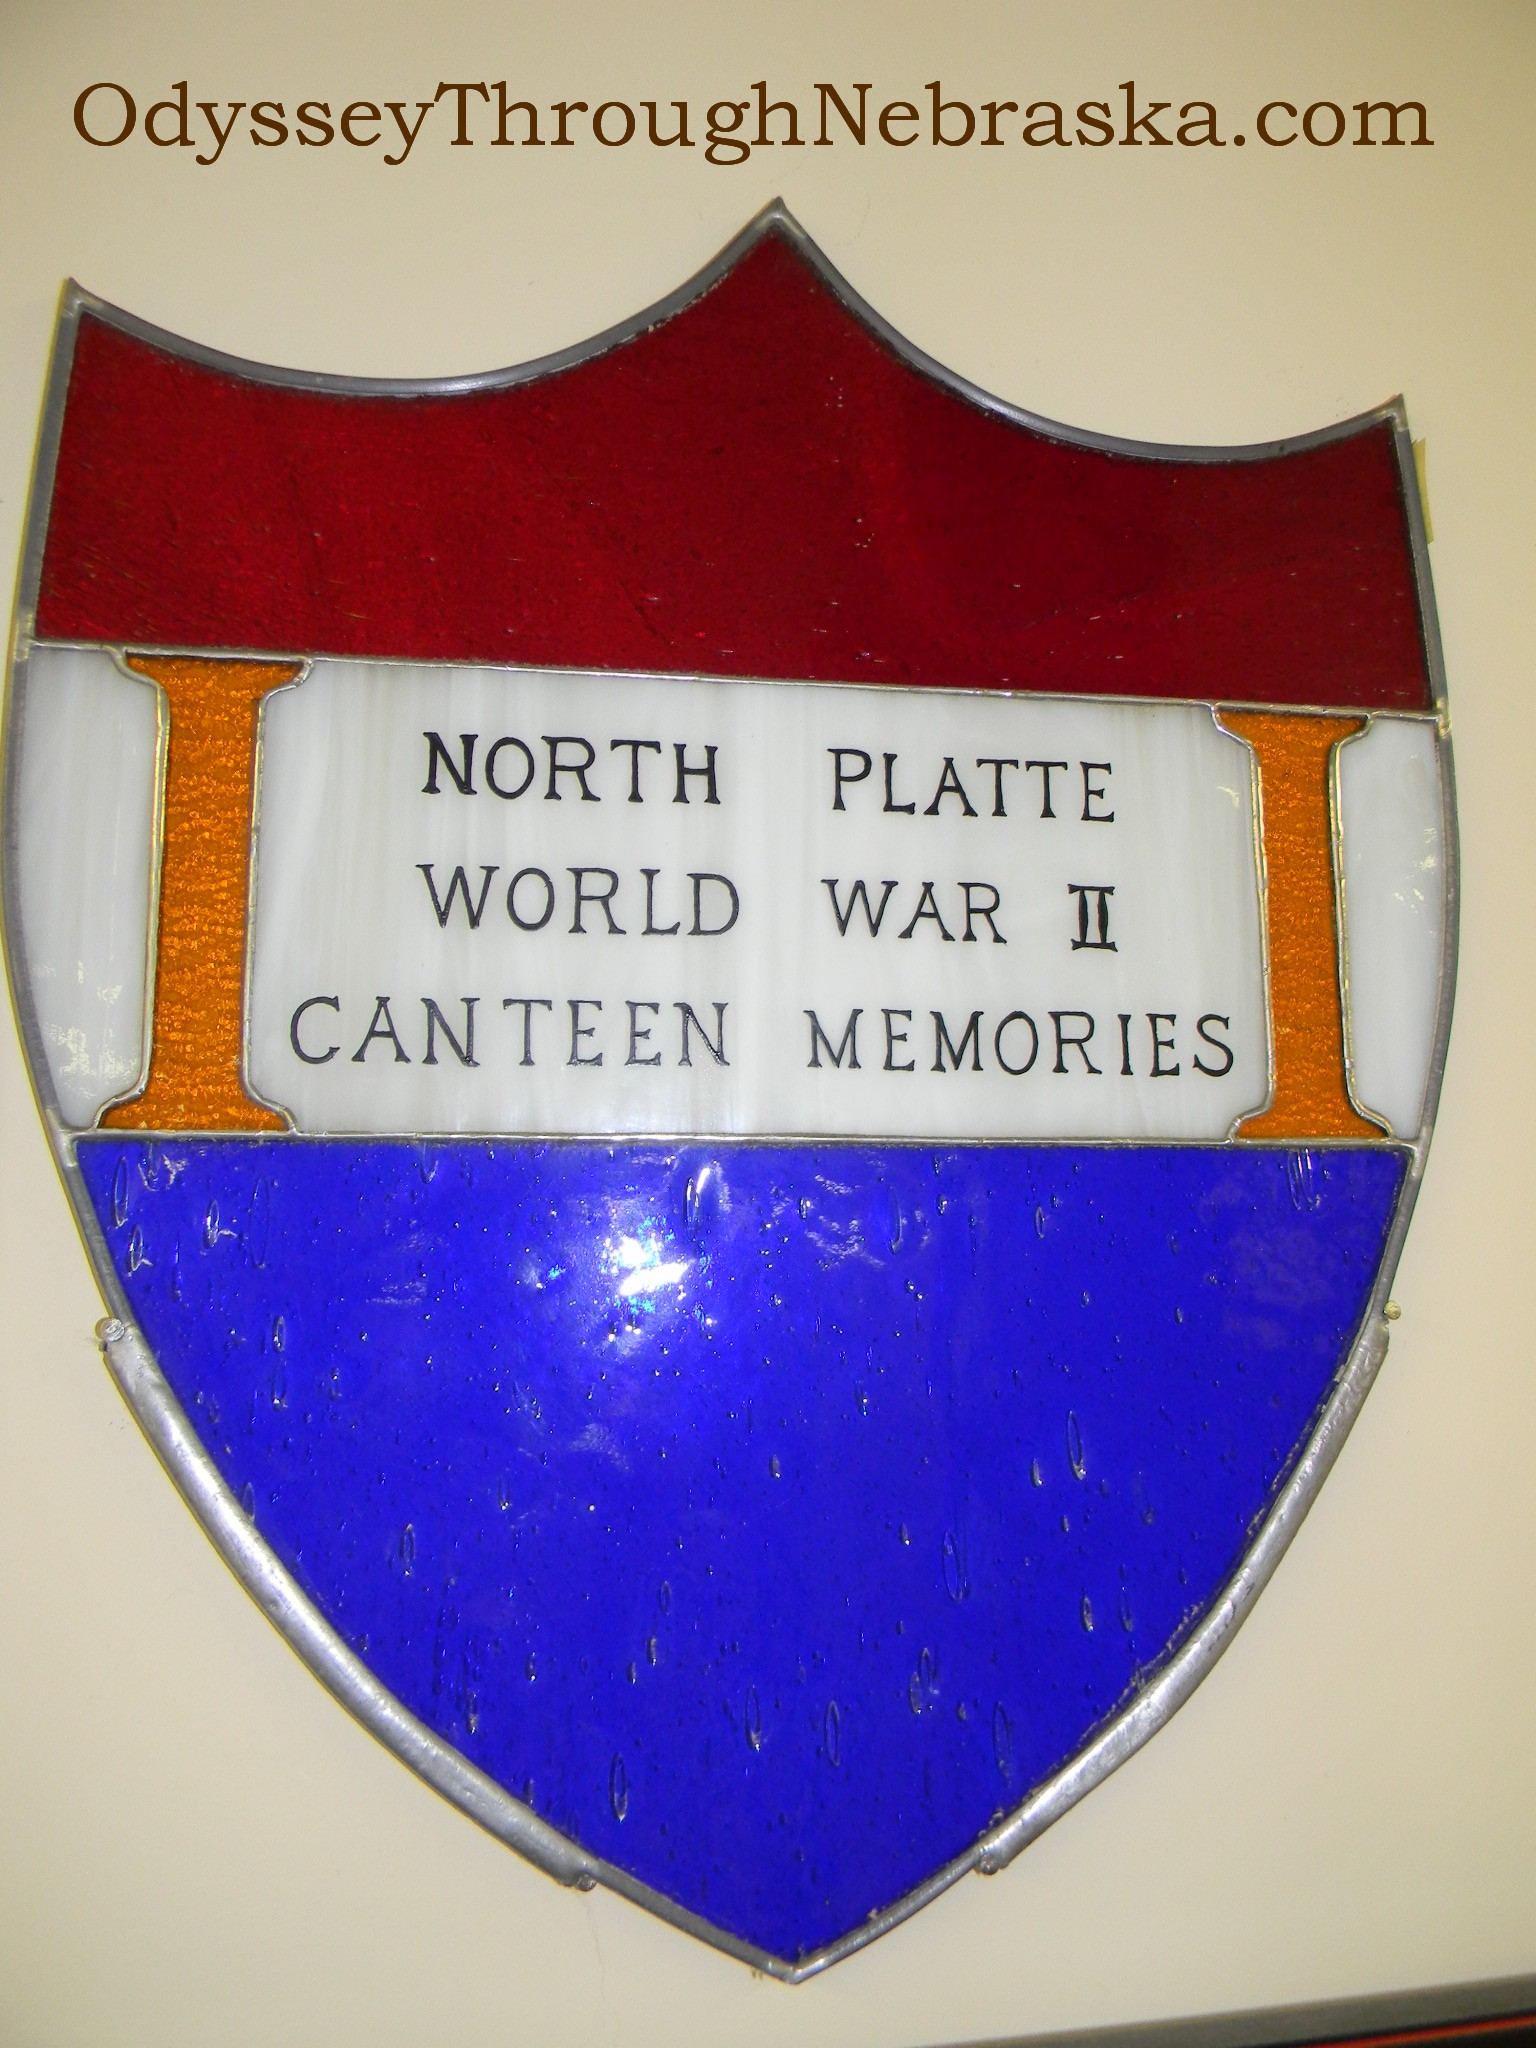 The North Platte Canteen served soldiers during World War 2